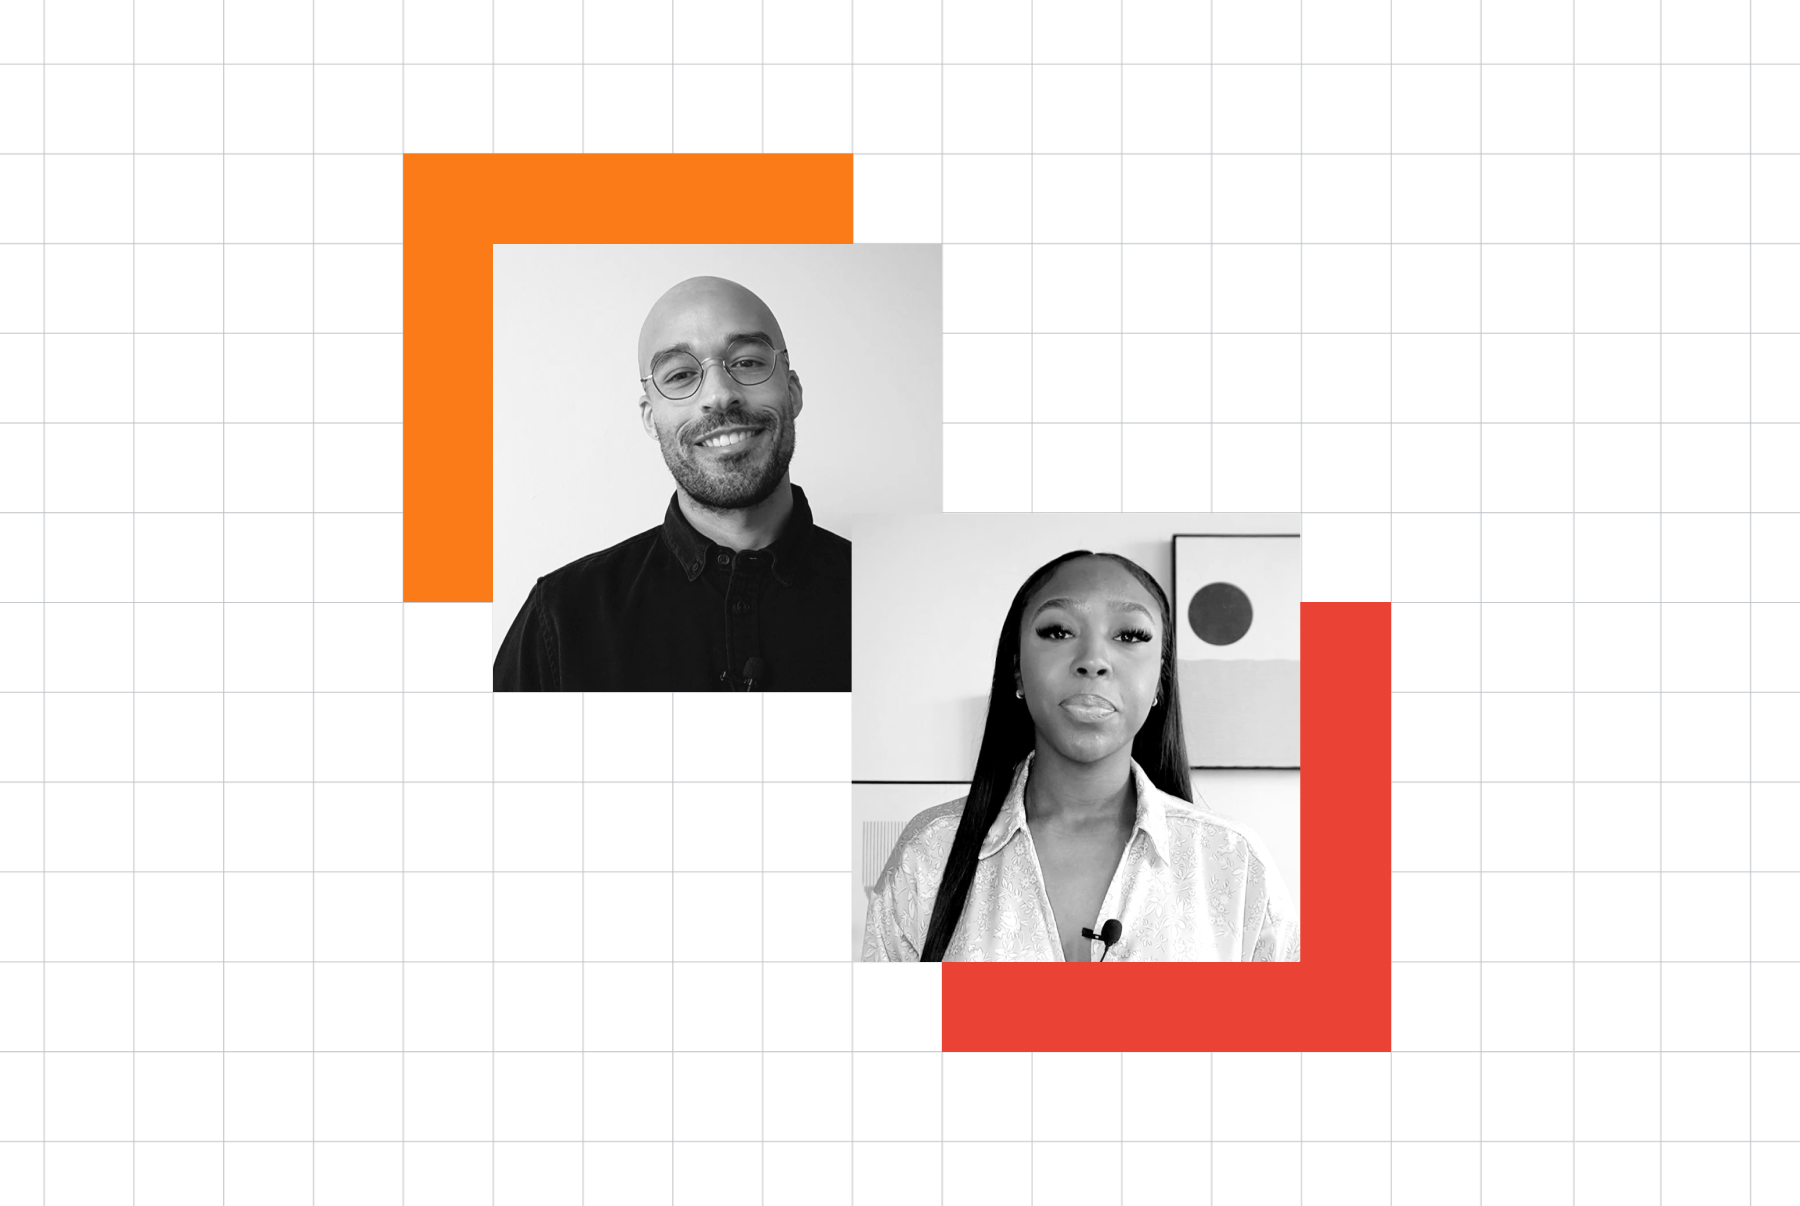 Overlapping portraits of Raphael Diallo, founder of Google's Inclusive Marketing Consultants, and Alisha Jennings-Olowosuko, lead at Google's Inclusive Marketing Consultants.